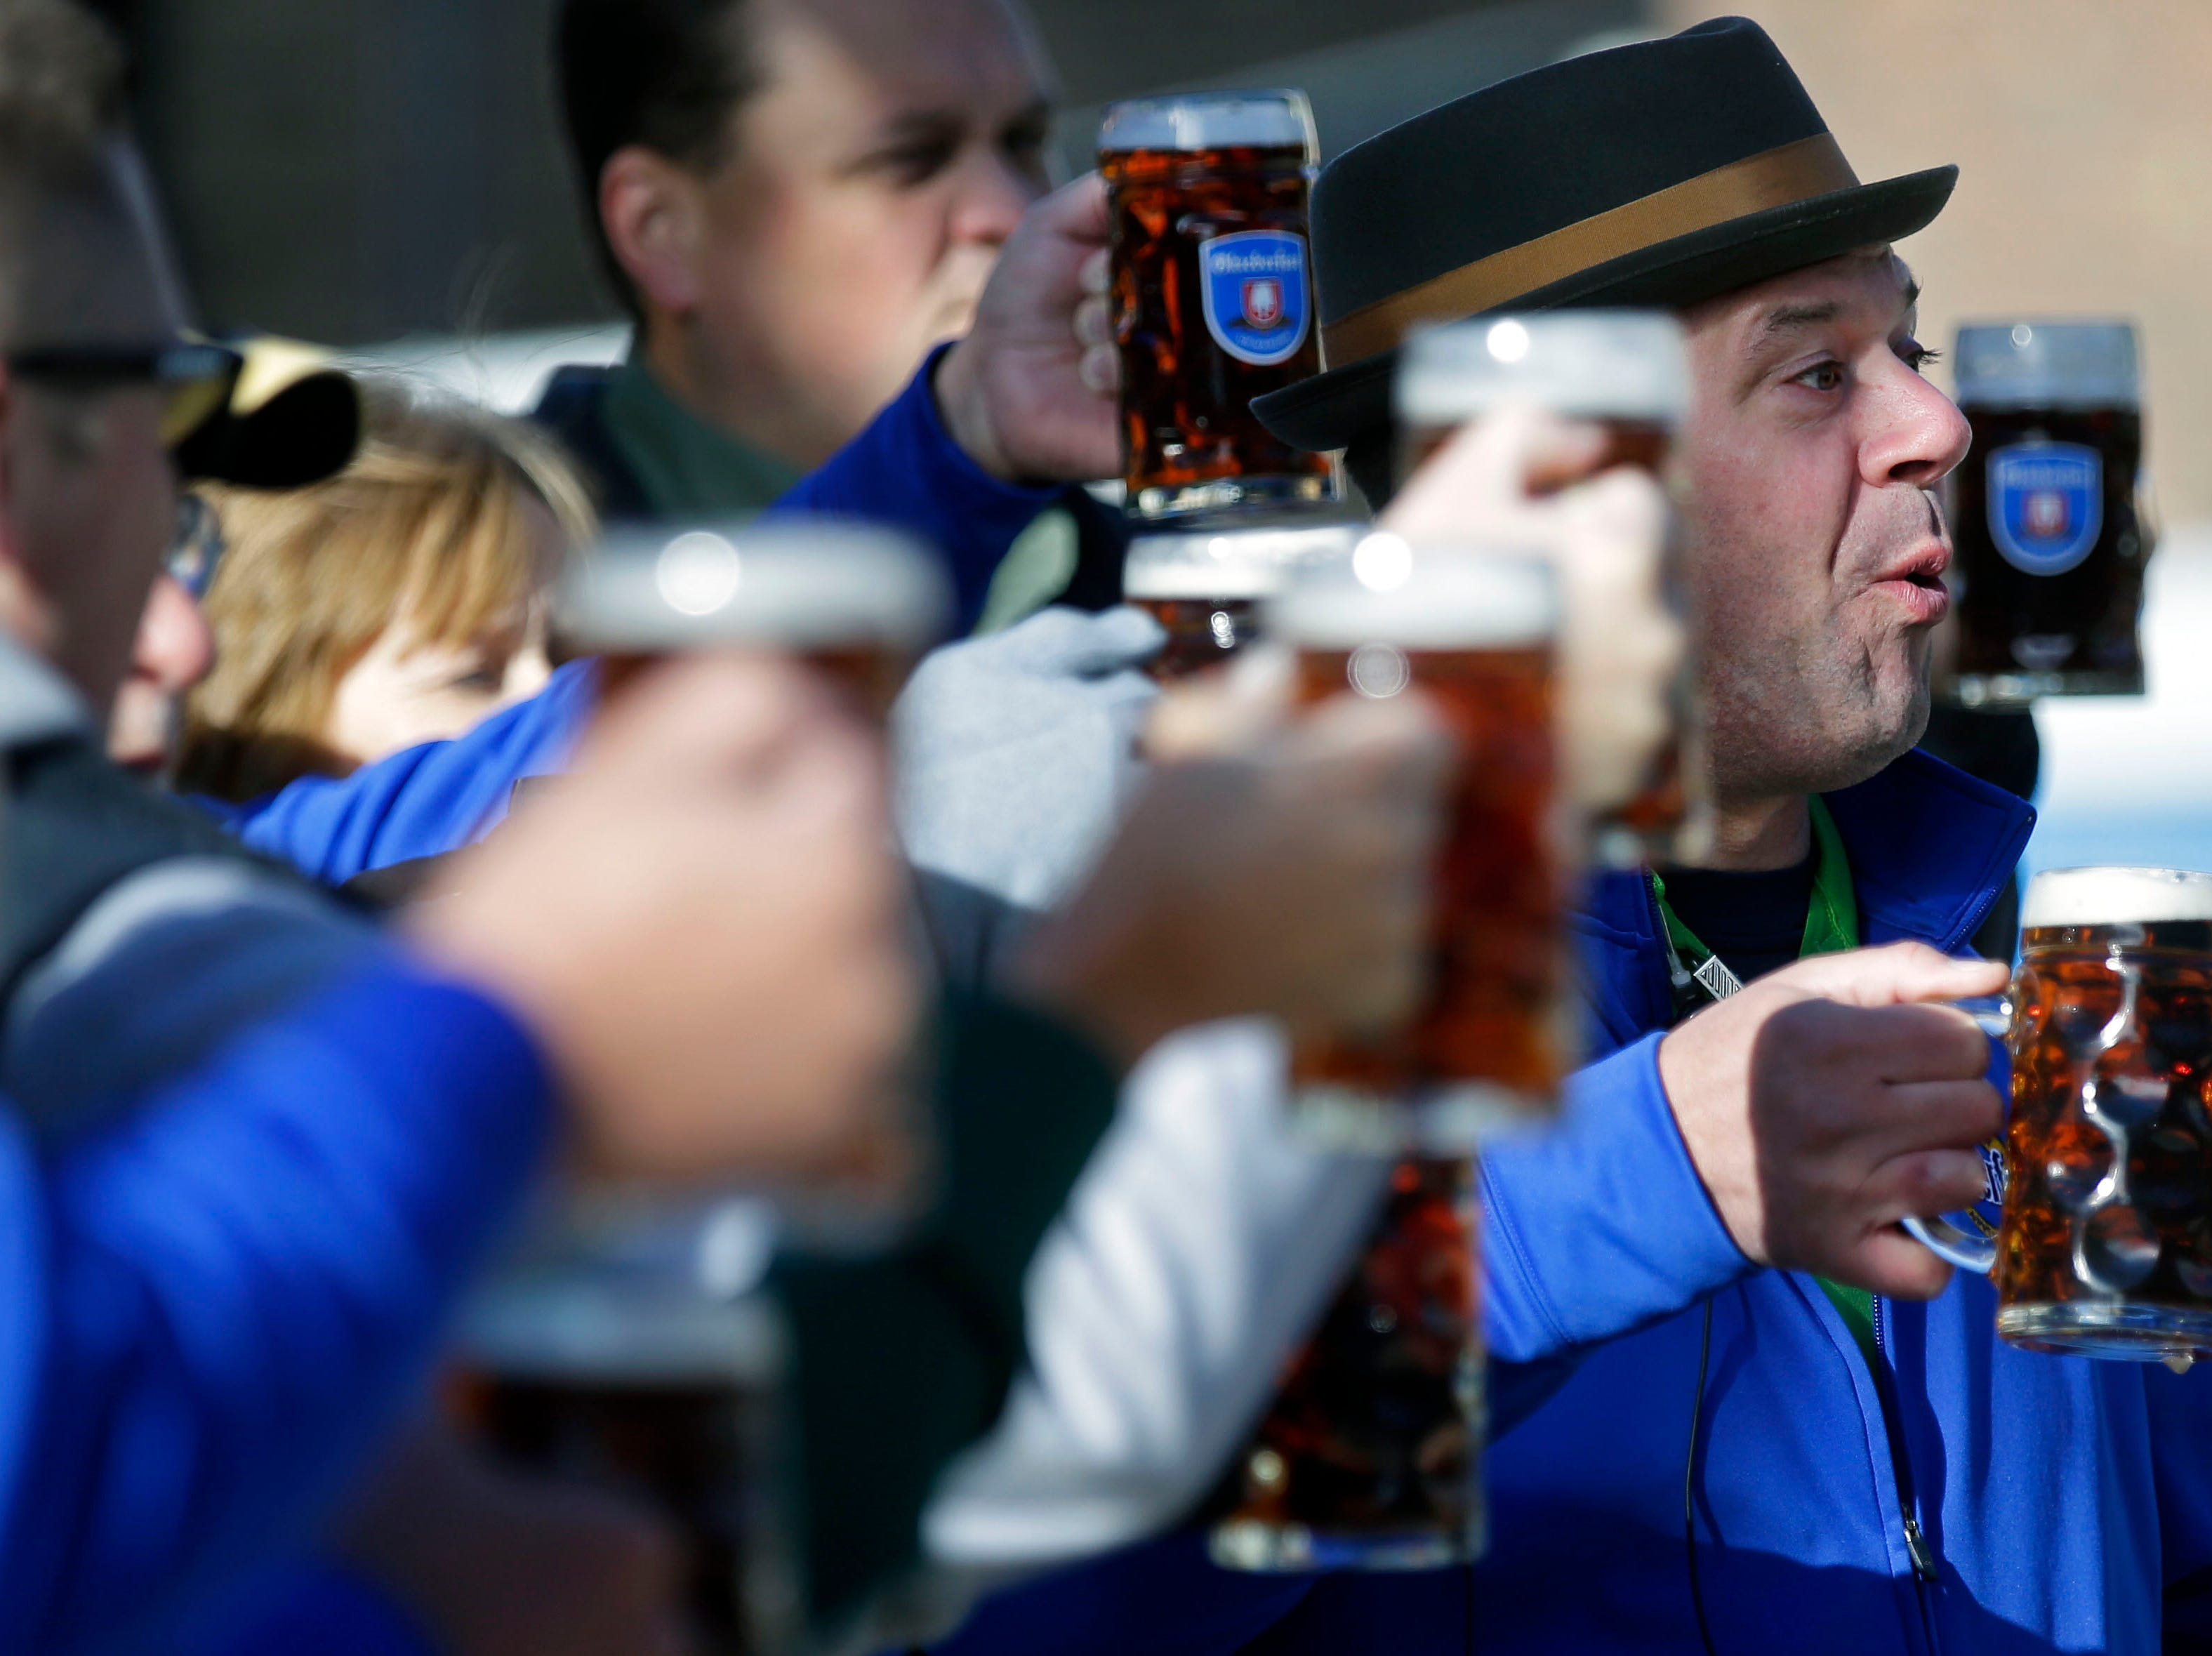 Octoberfest chairman Eric Stadler counts down to the official opening toast as Octoberfest 2018 takes place Saturday, September 29, 2018, in downtown Appleton, Wis.